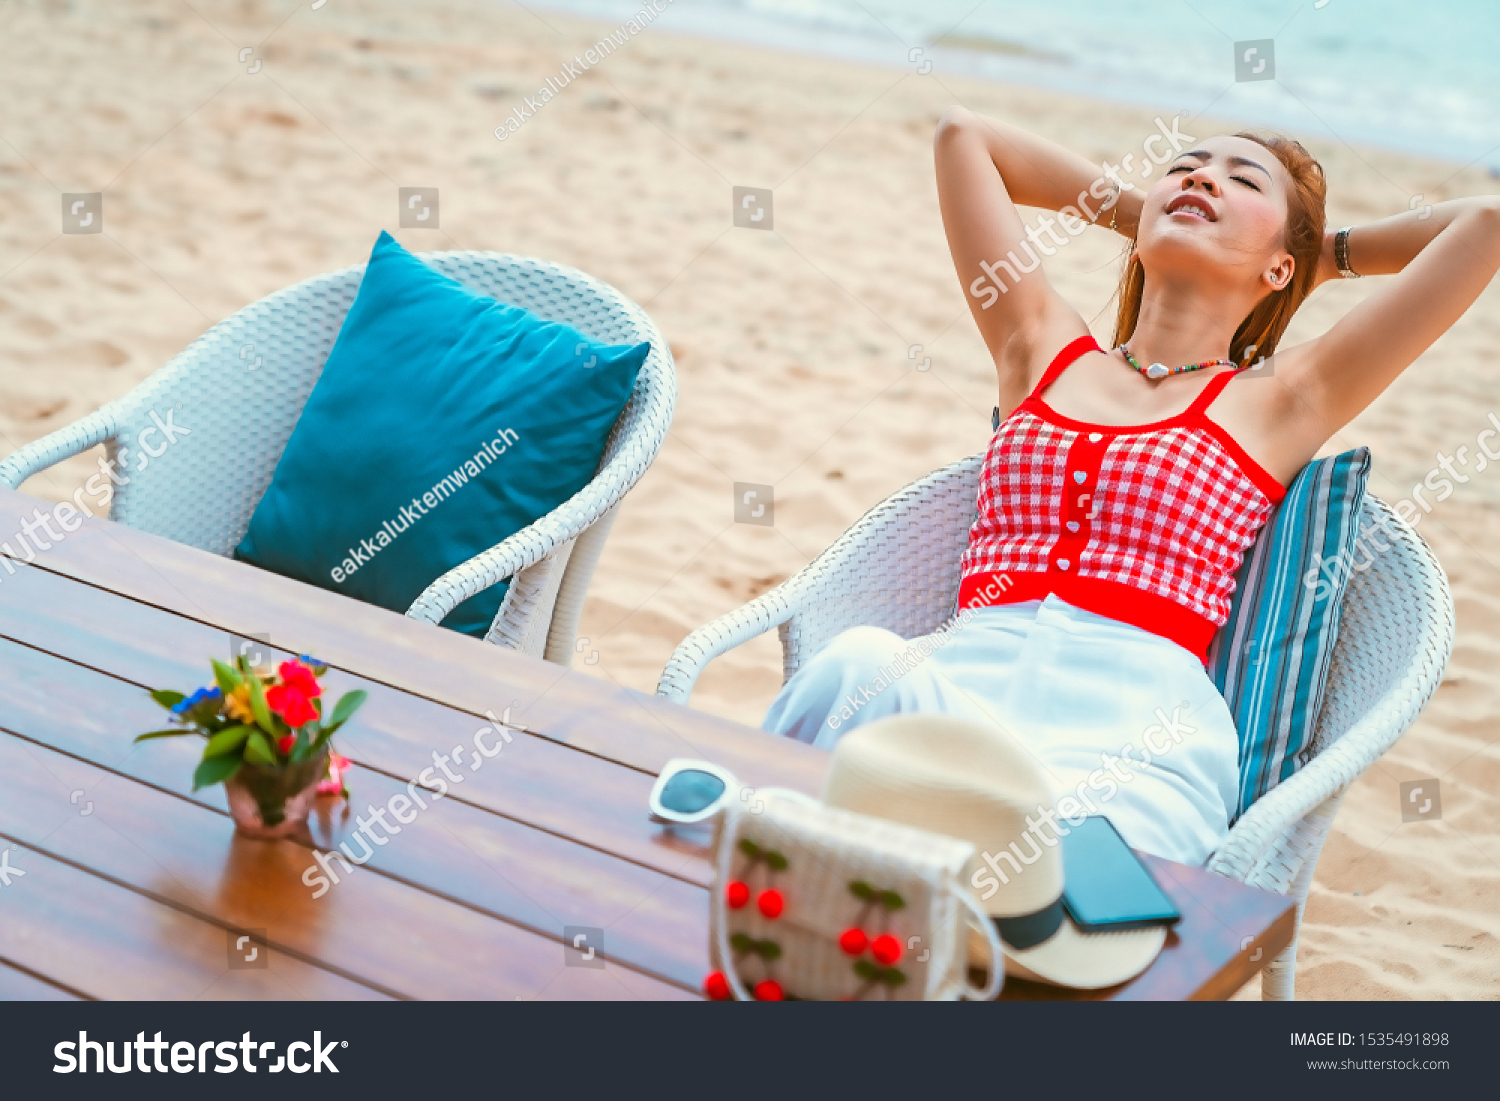 traveler girl in red dress sit on the chair in beach with vacation trip in emotional relax and smile for relax concept #1535491898